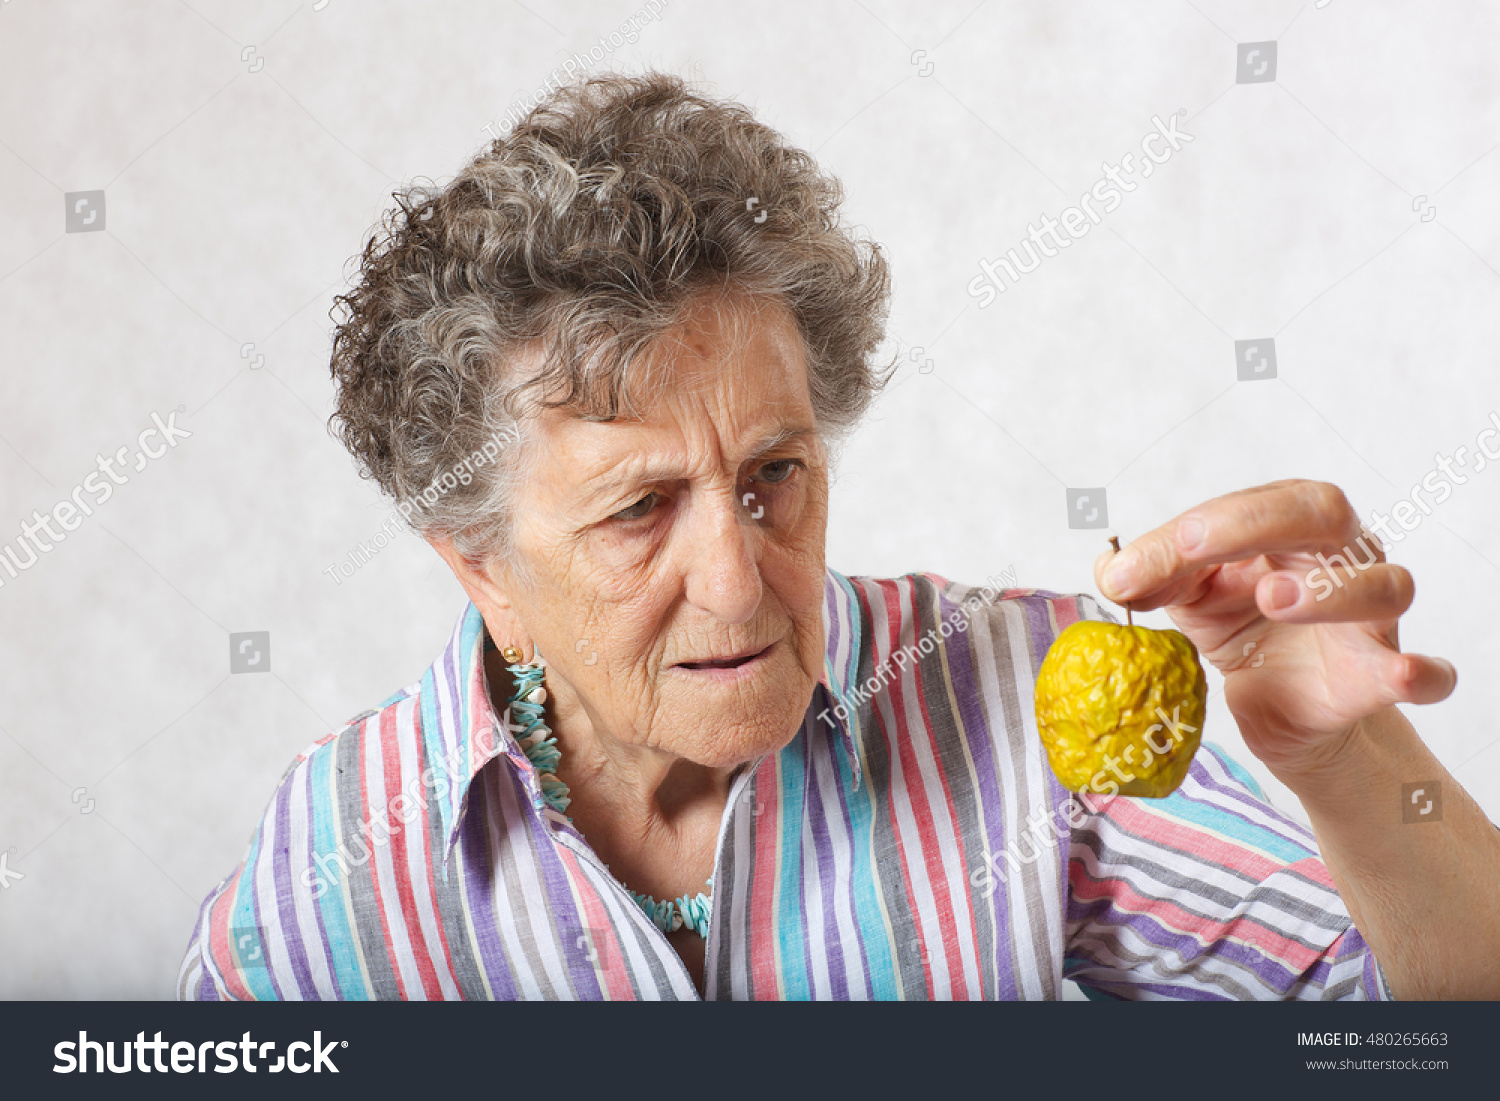 Old Woman Between 70 80 Years Stock Photo (Edit Now) 480265663